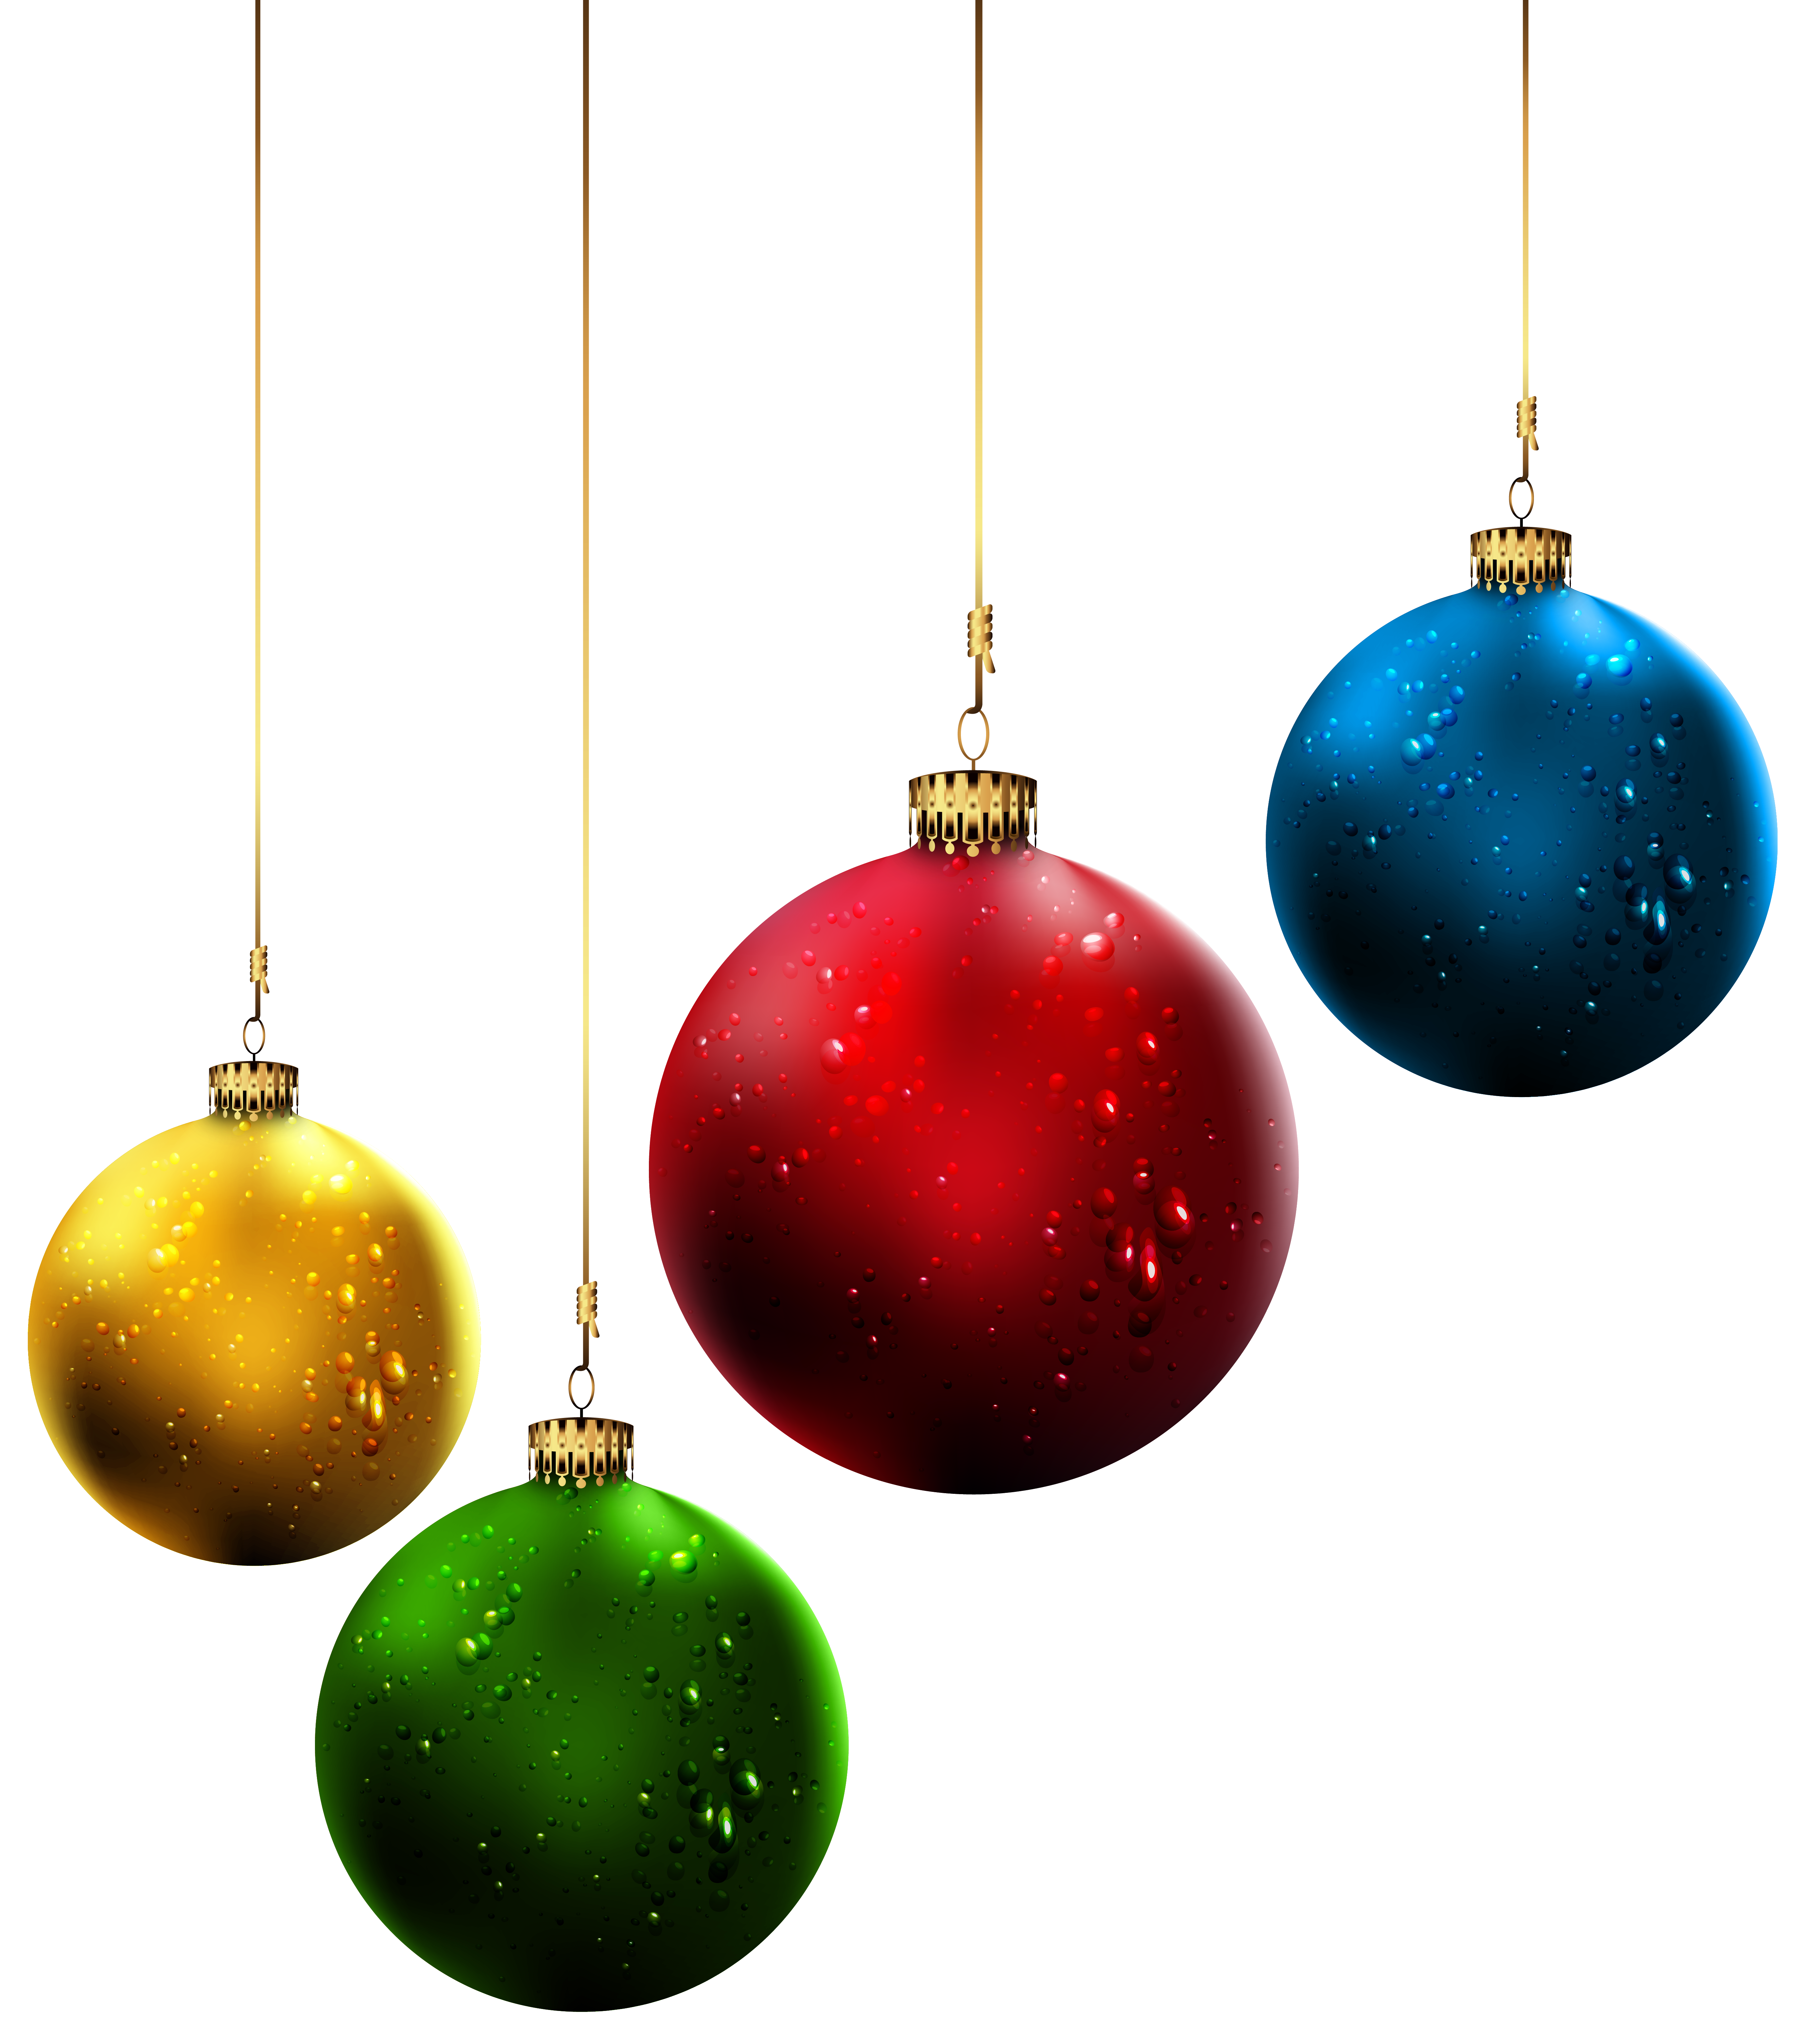 Christmas Balls Png Clip Art Image Gallery Yopriceville High Quality Images And Transparent Png Christmas Balls Image Christmas Balls Christmas Ornaments